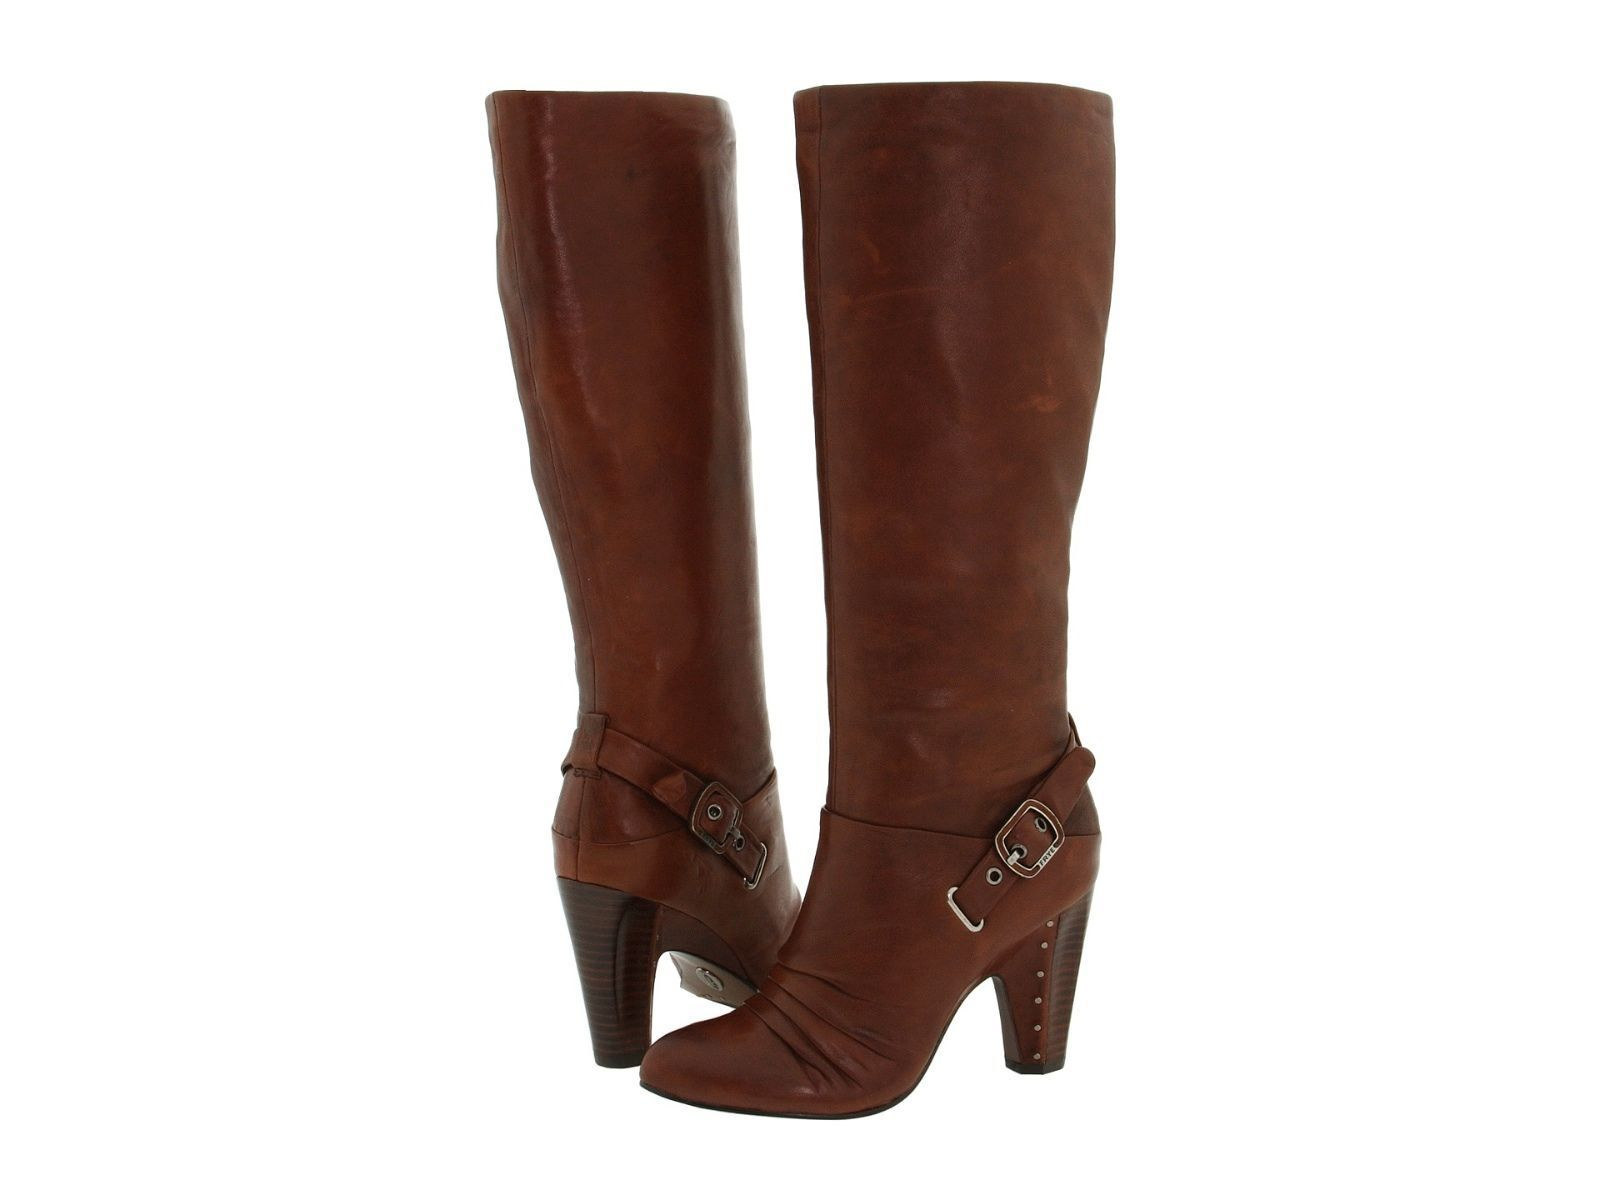 FRYE Bethany Strappy Softie Saddle Brown Leather Tall Boots Sz 6.5  388 NEW BOX